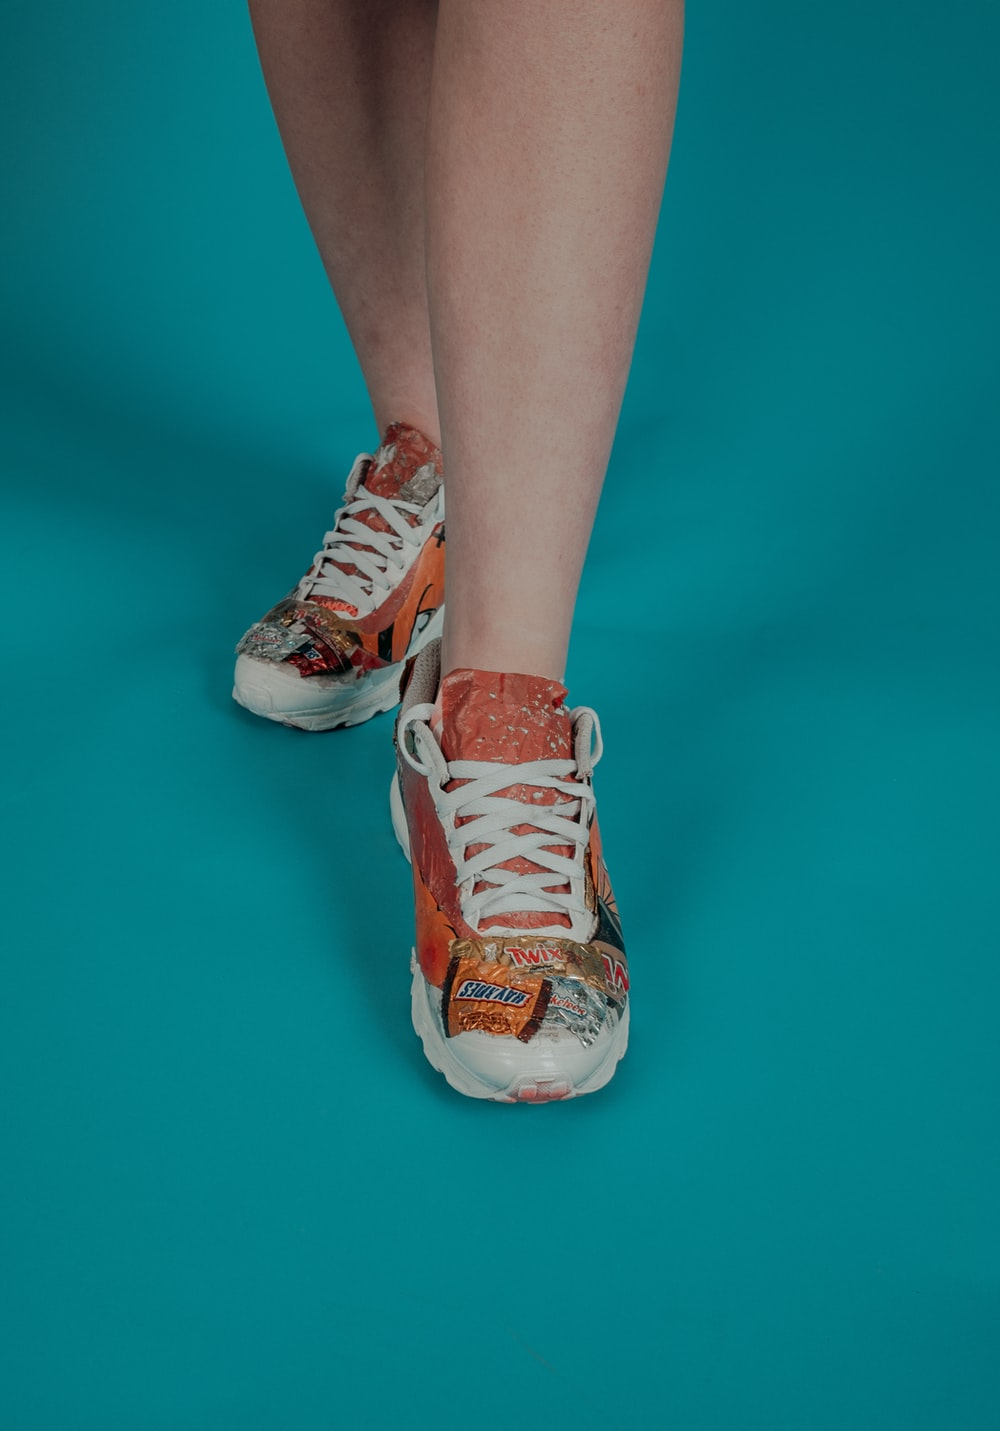 orange-and-white low-top sneakers